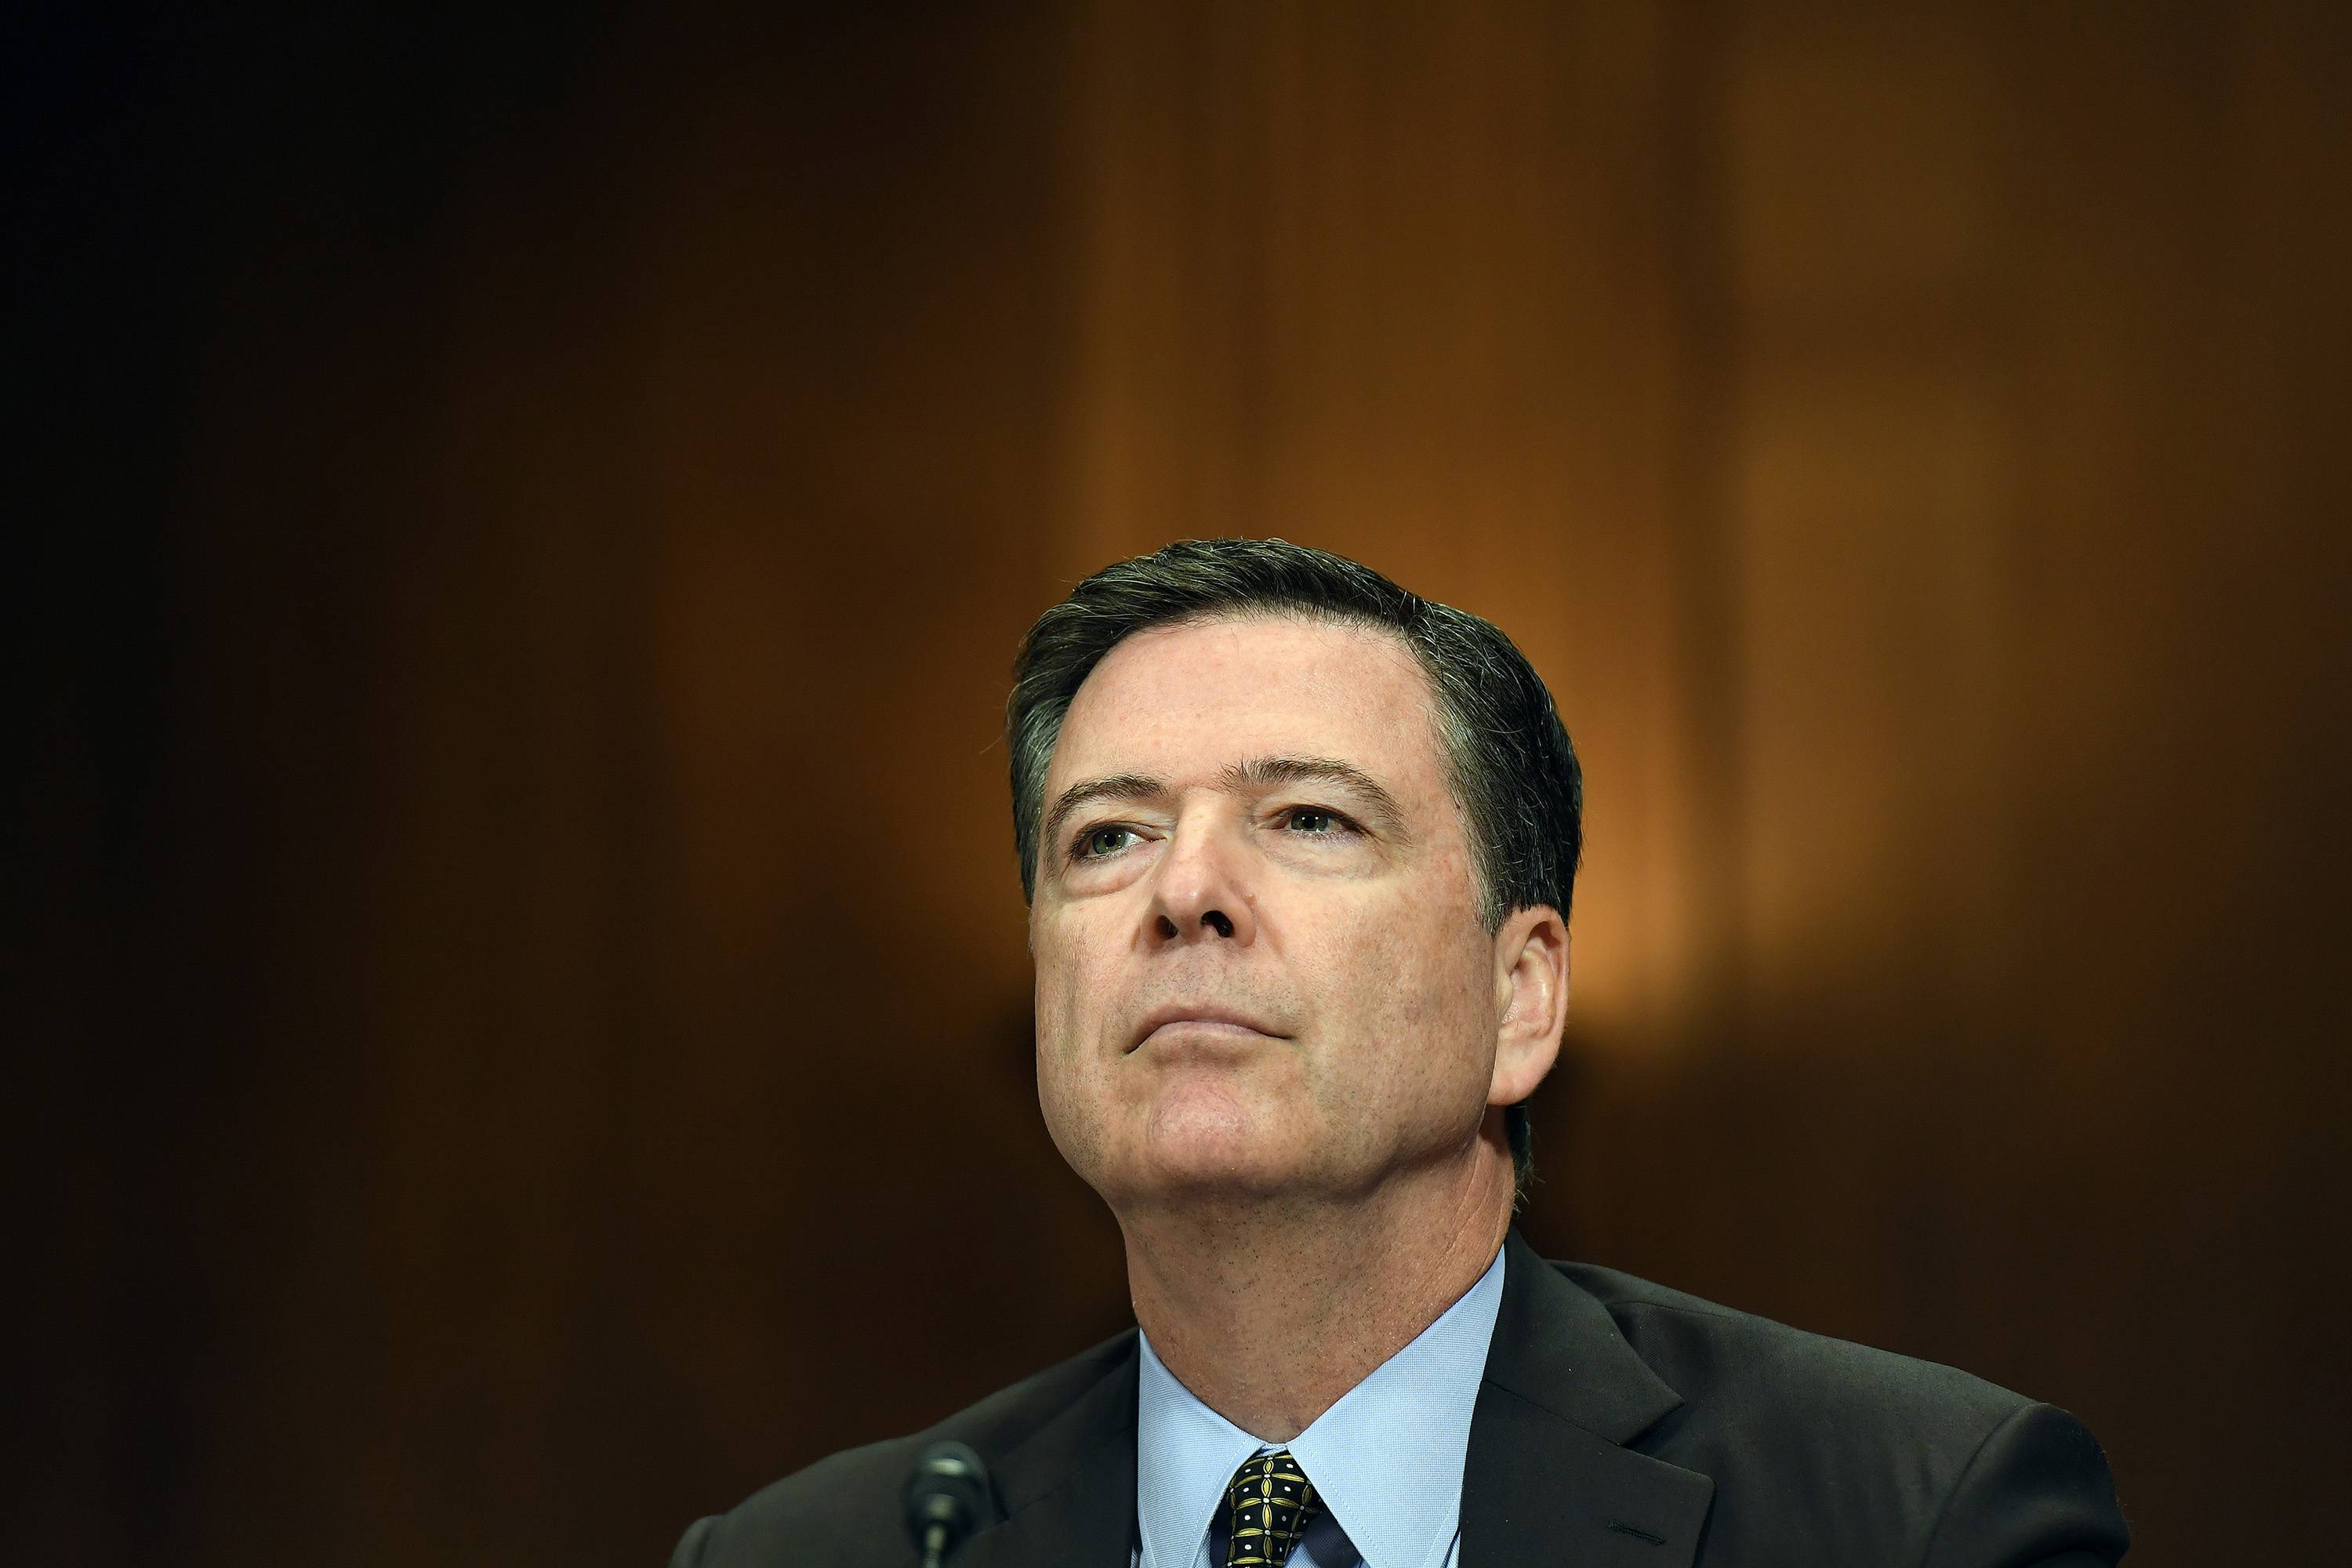 Lester: Suburban lawmaker says he knew Comey as precise, methodical